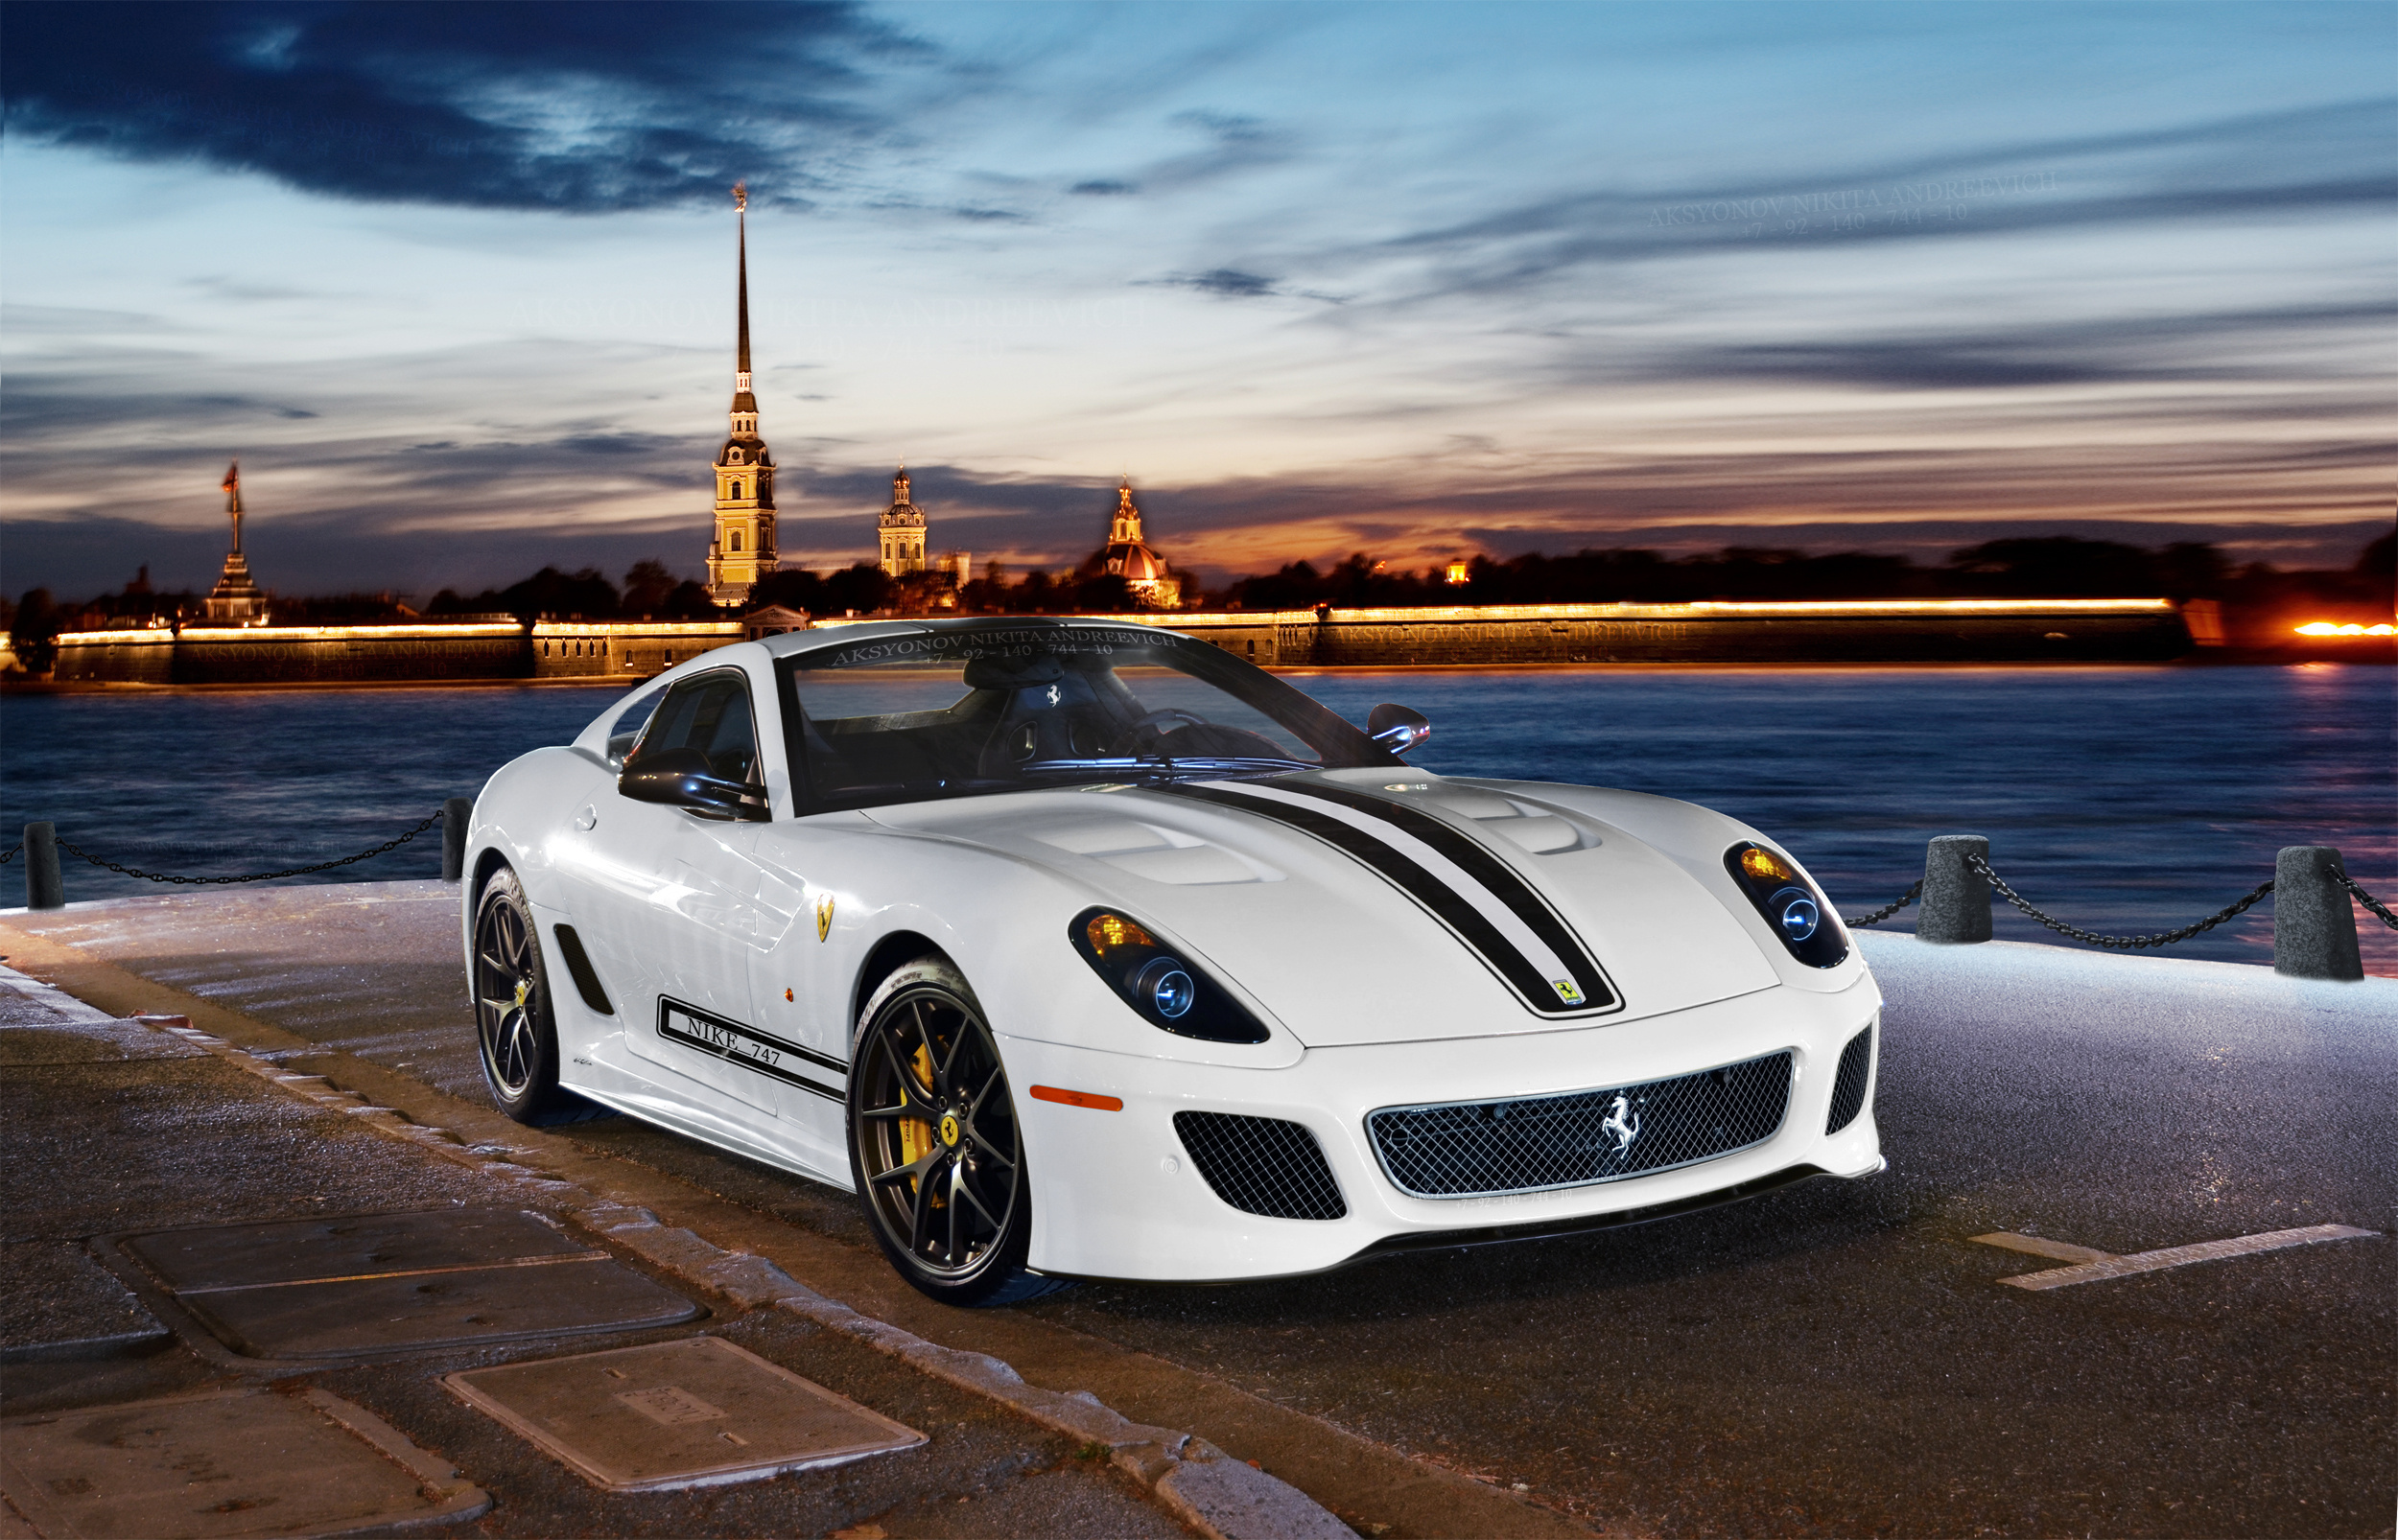 122422 Screensavers and Wallpapers Ferrari for phone. Download Ferrari, Cars, 599 Gto, 2-Seater, Two-Seater pictures for free